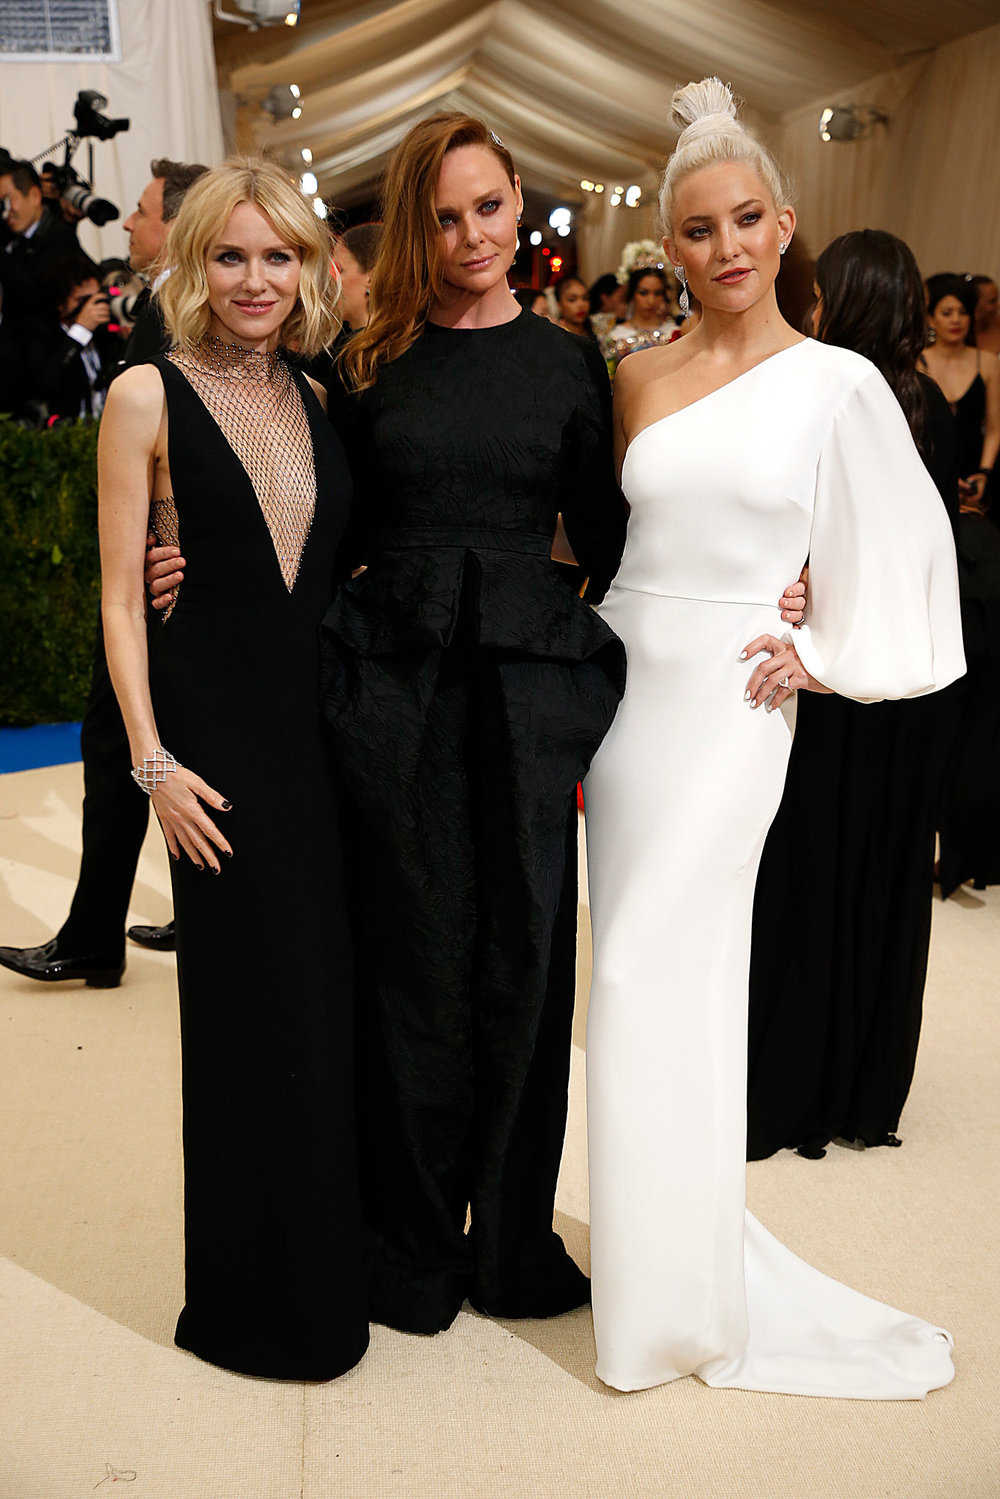 Kate Hudson, Naomi Watts with Stella McCartney - Met Gala 2017Image from NewYorTimes.com